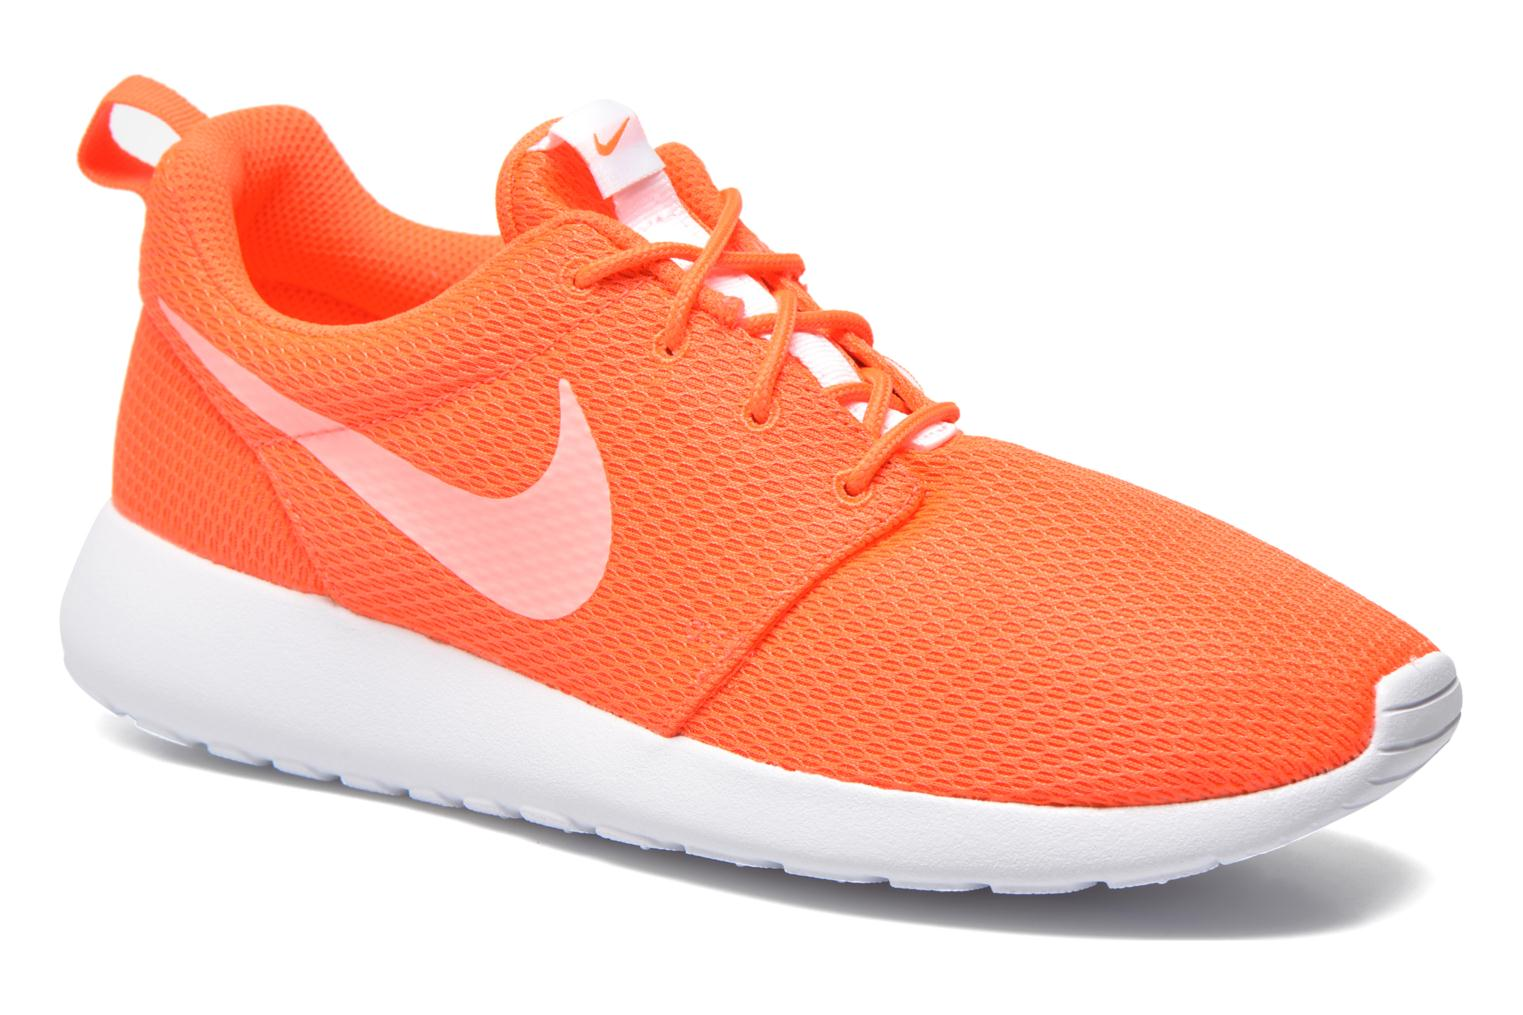 Baskets Nike Wmns Nike Roshe One Orange vue détail/paire